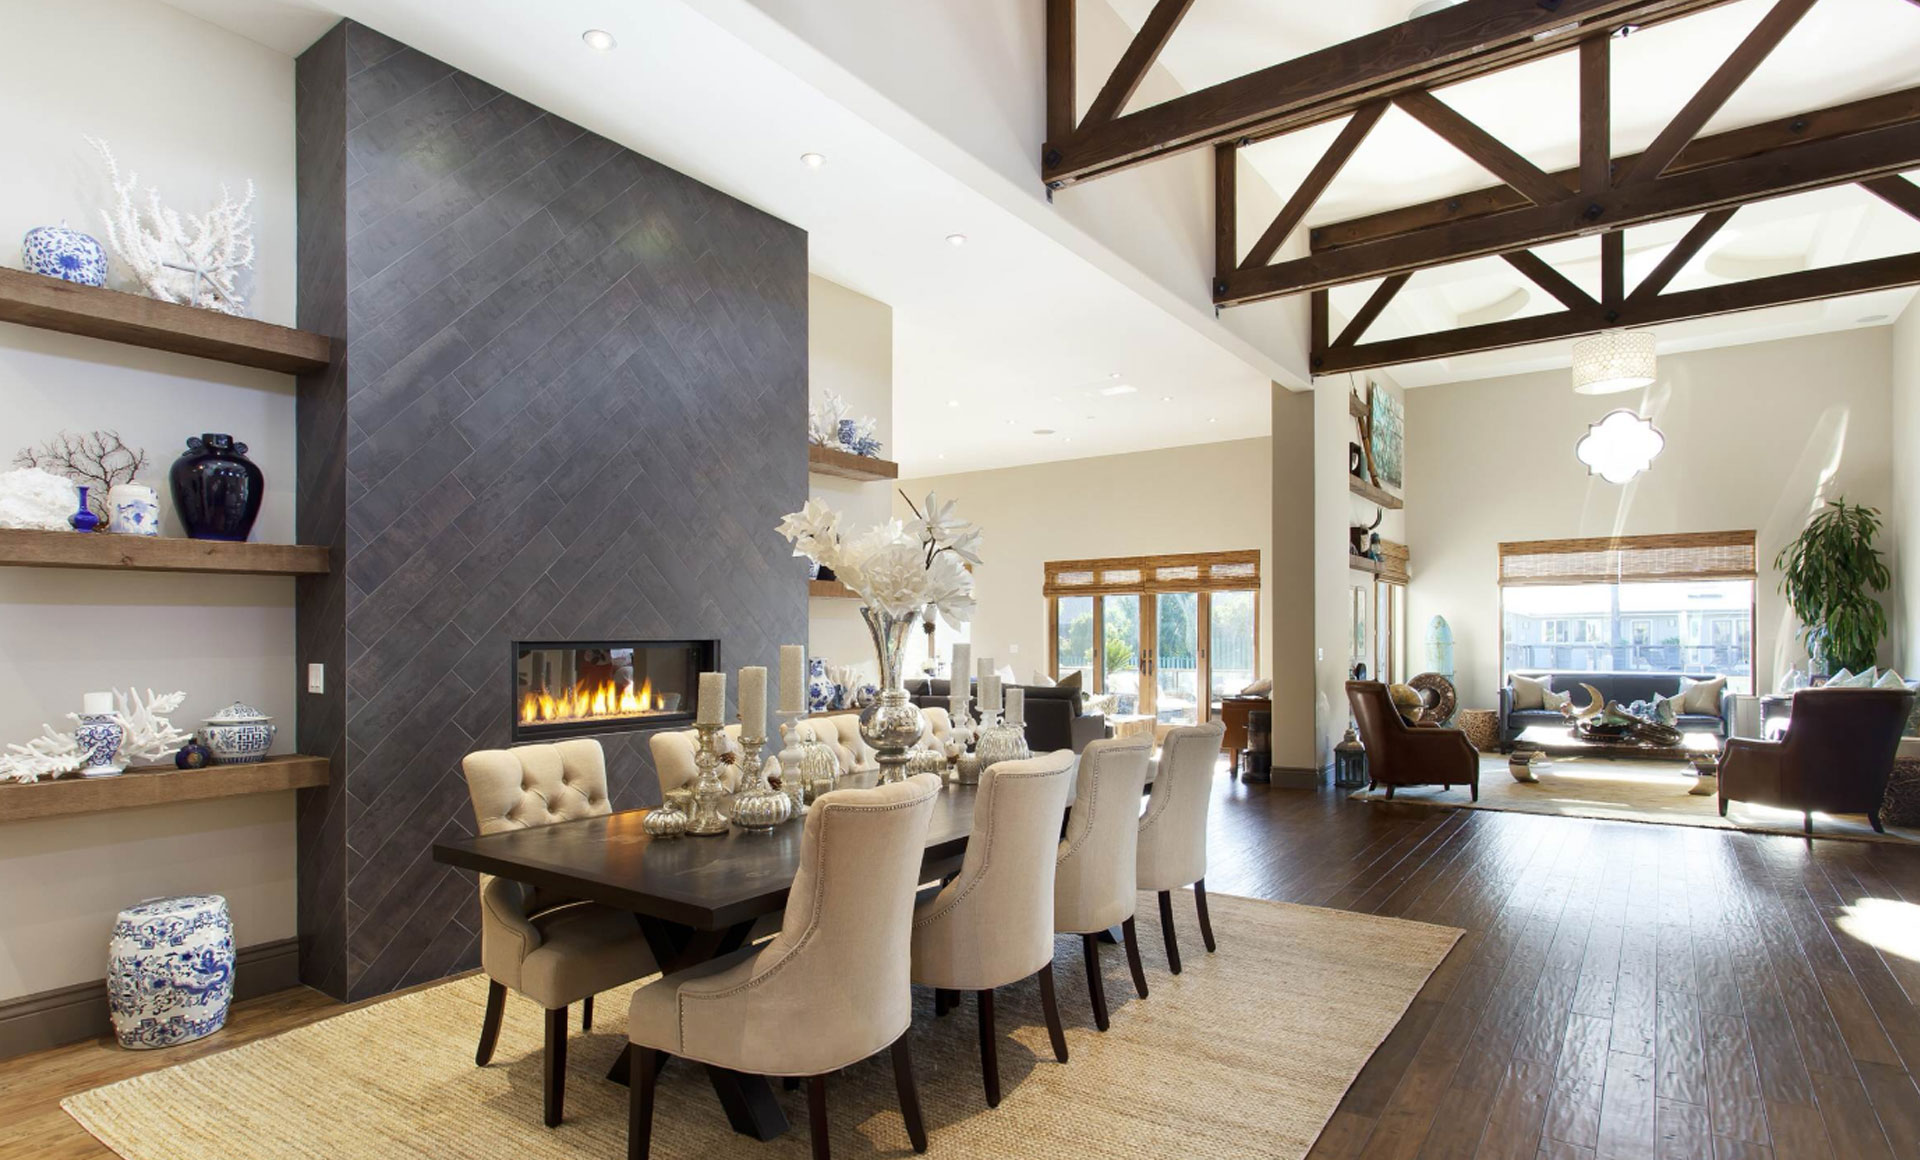 Fireplace Fundamentals: 13 Fireplace Ideas To Spark Up Your Home